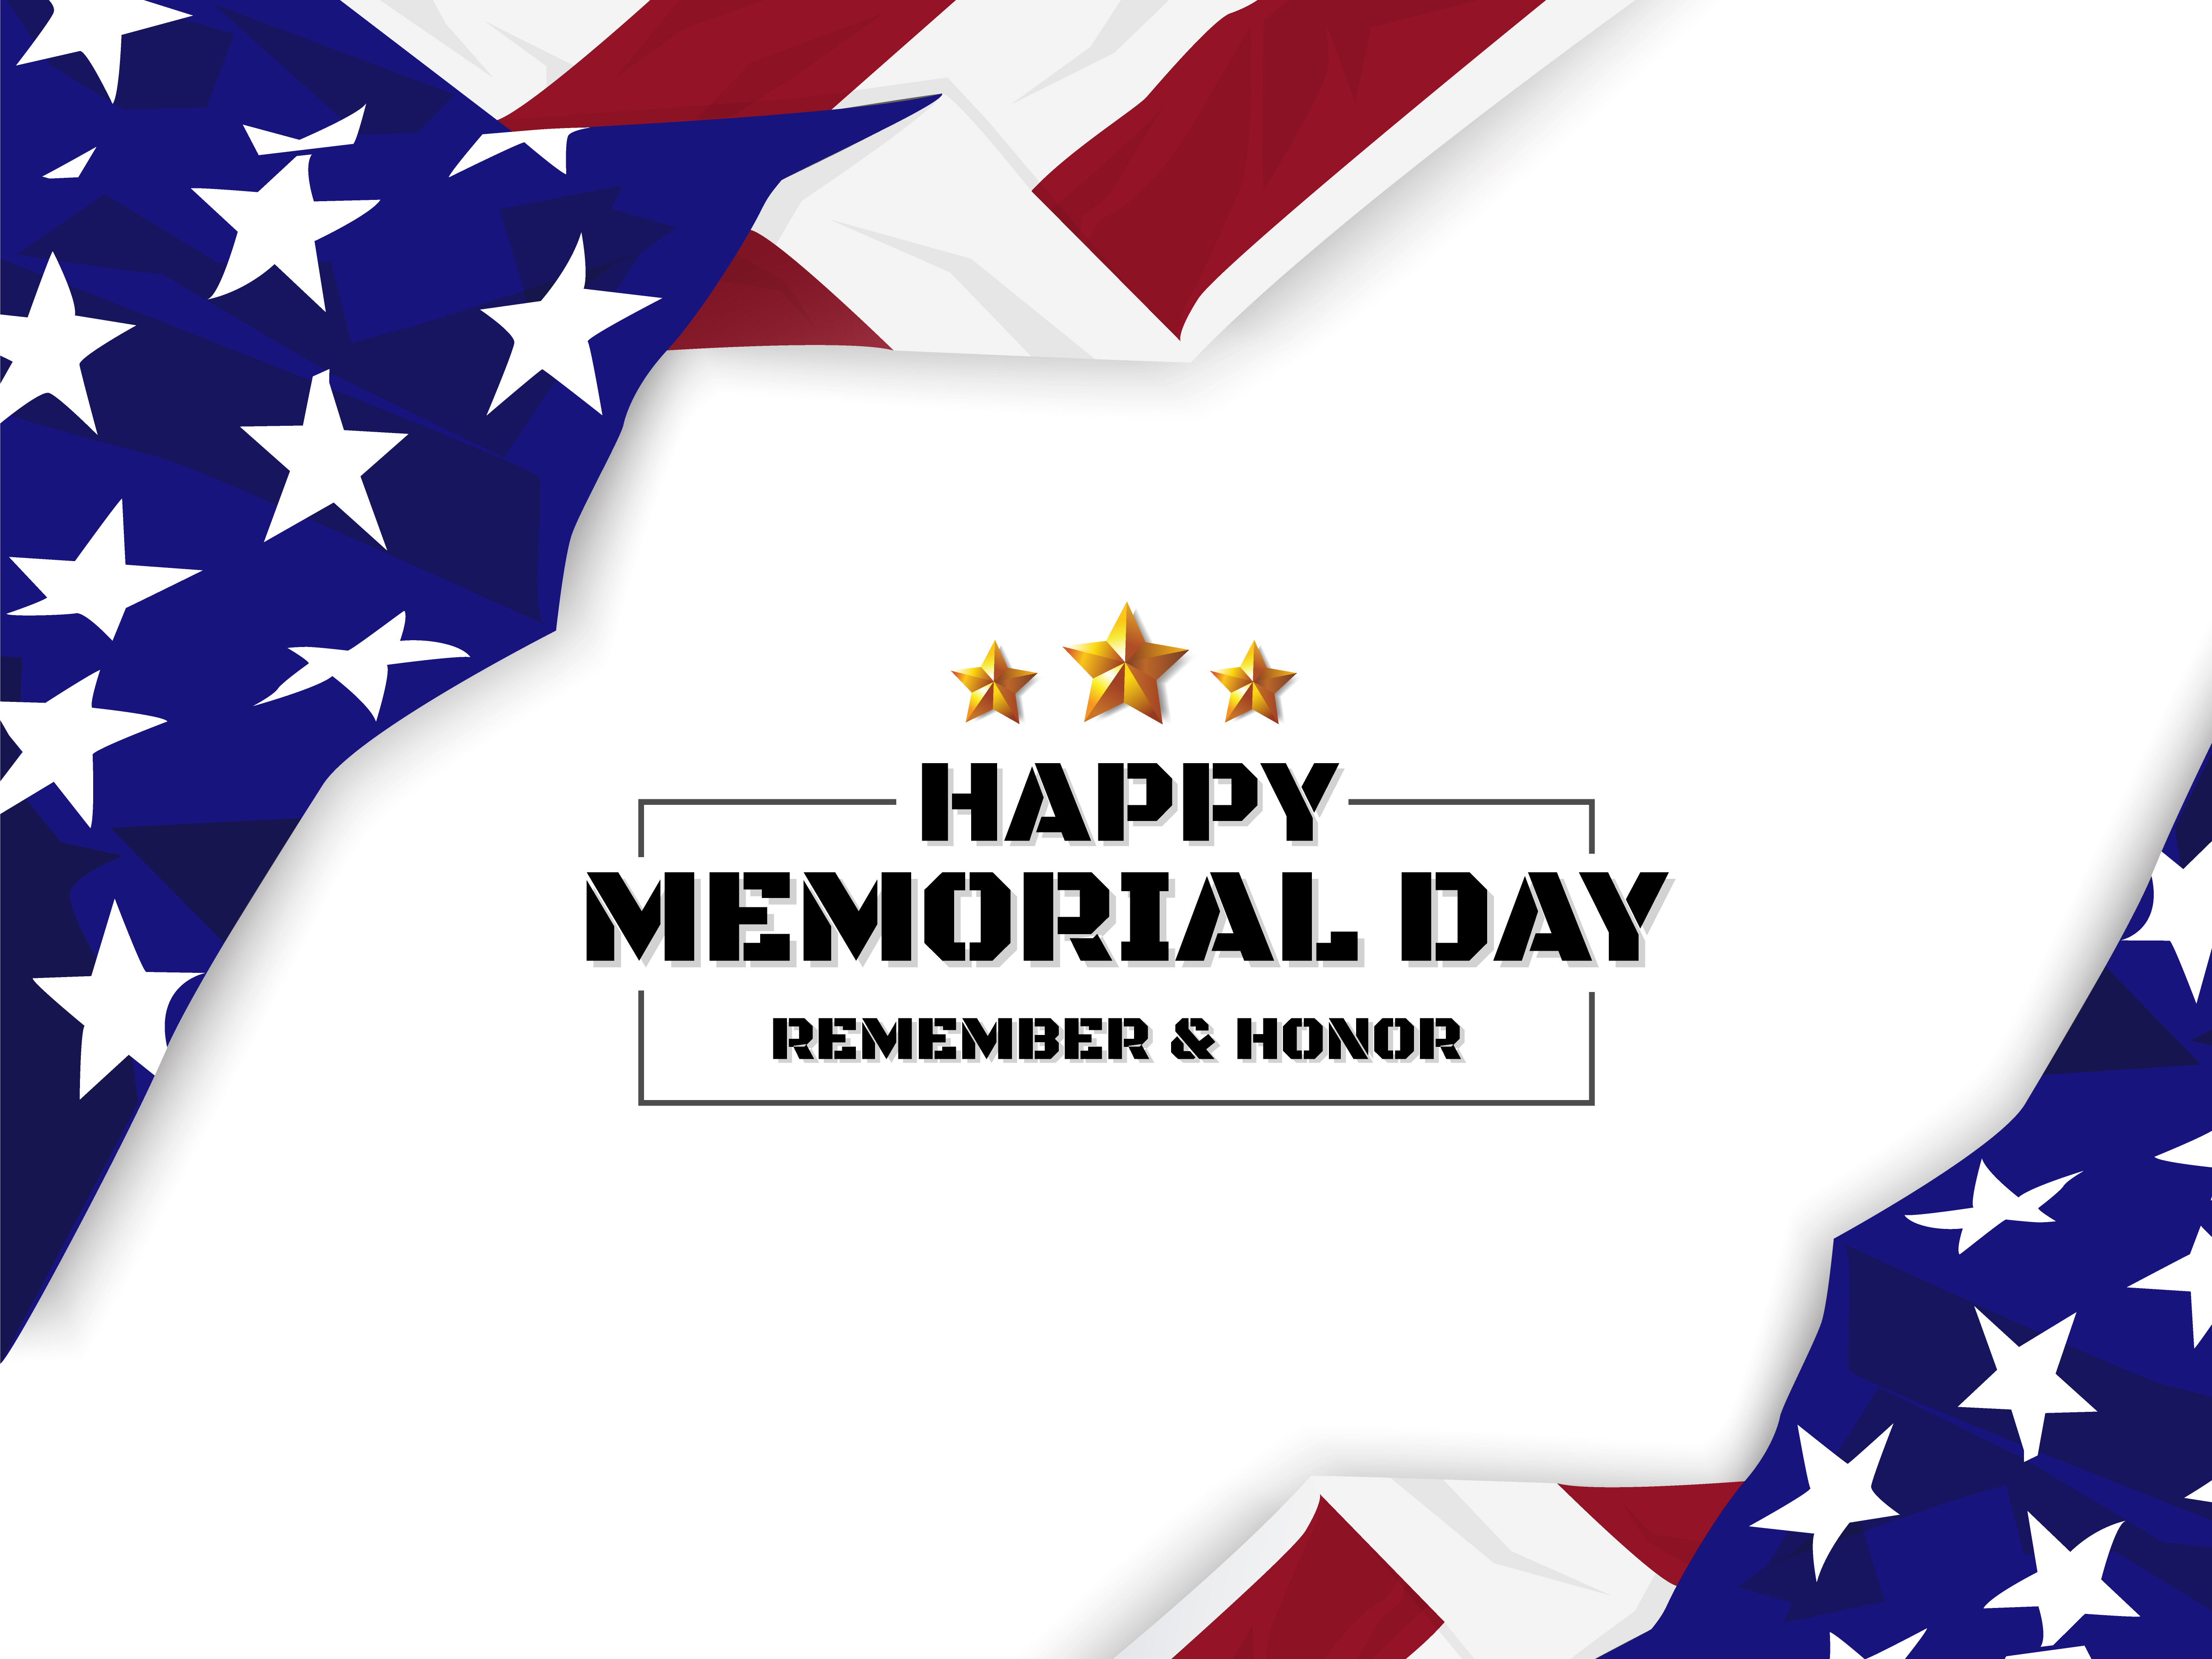 Happy Memorial Day Background Usa Flag Banner With Copy Space Download Free Vectors Clipart